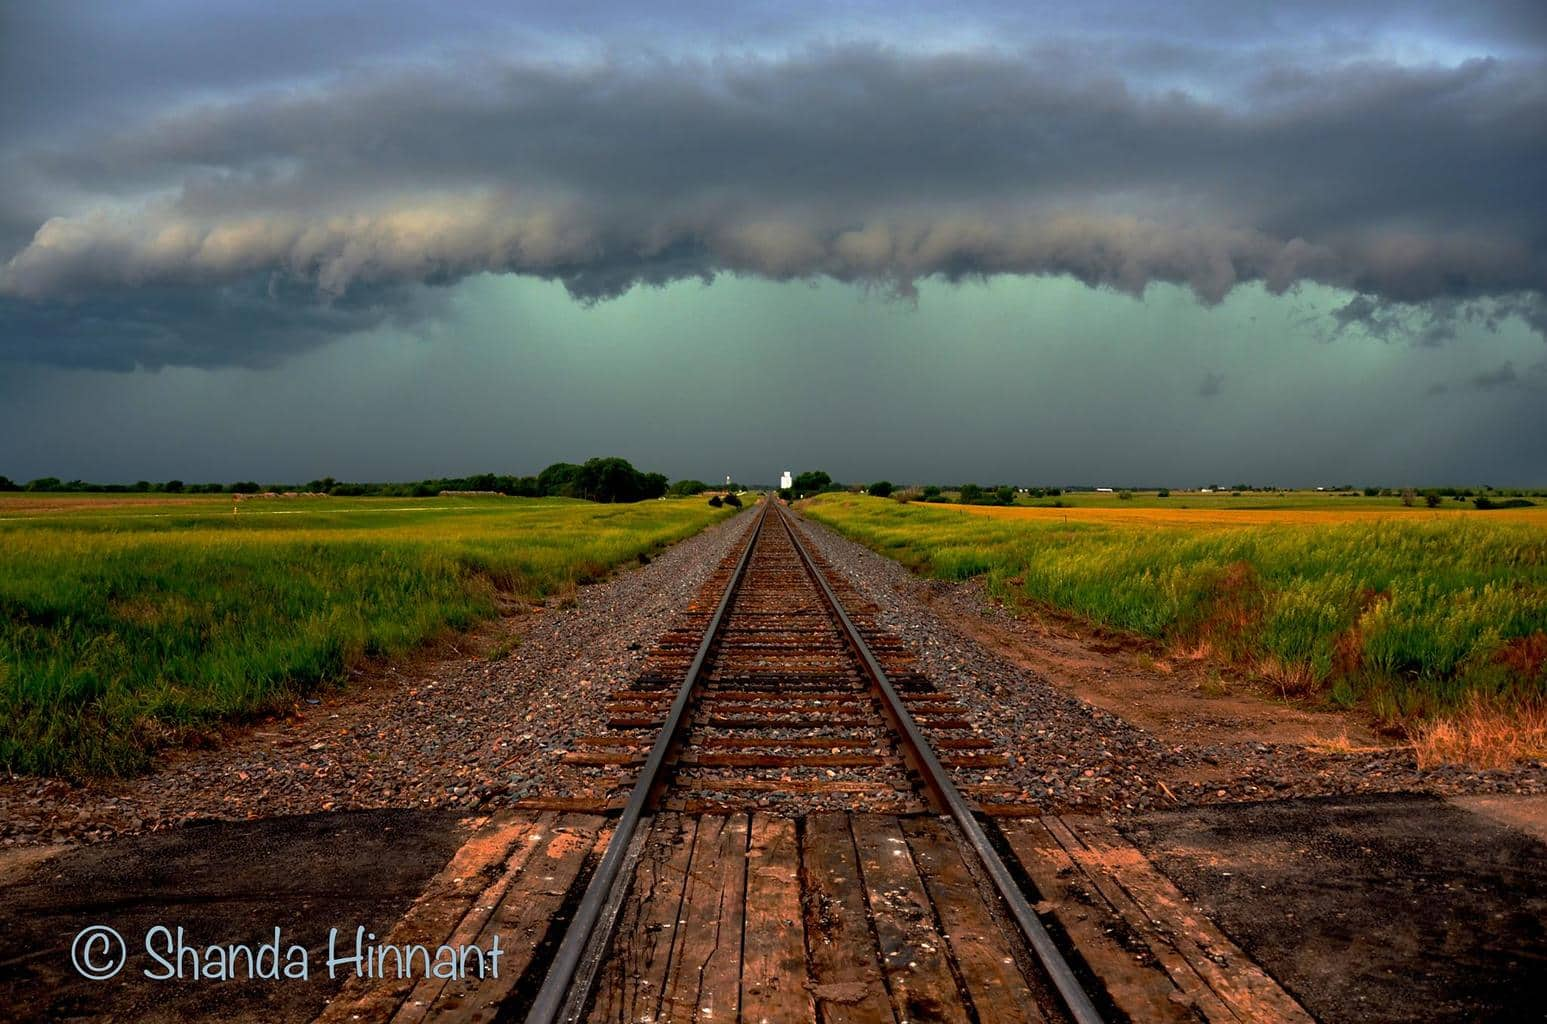 ARide into the storm. June 8, 2013 near Russell, Kansas.